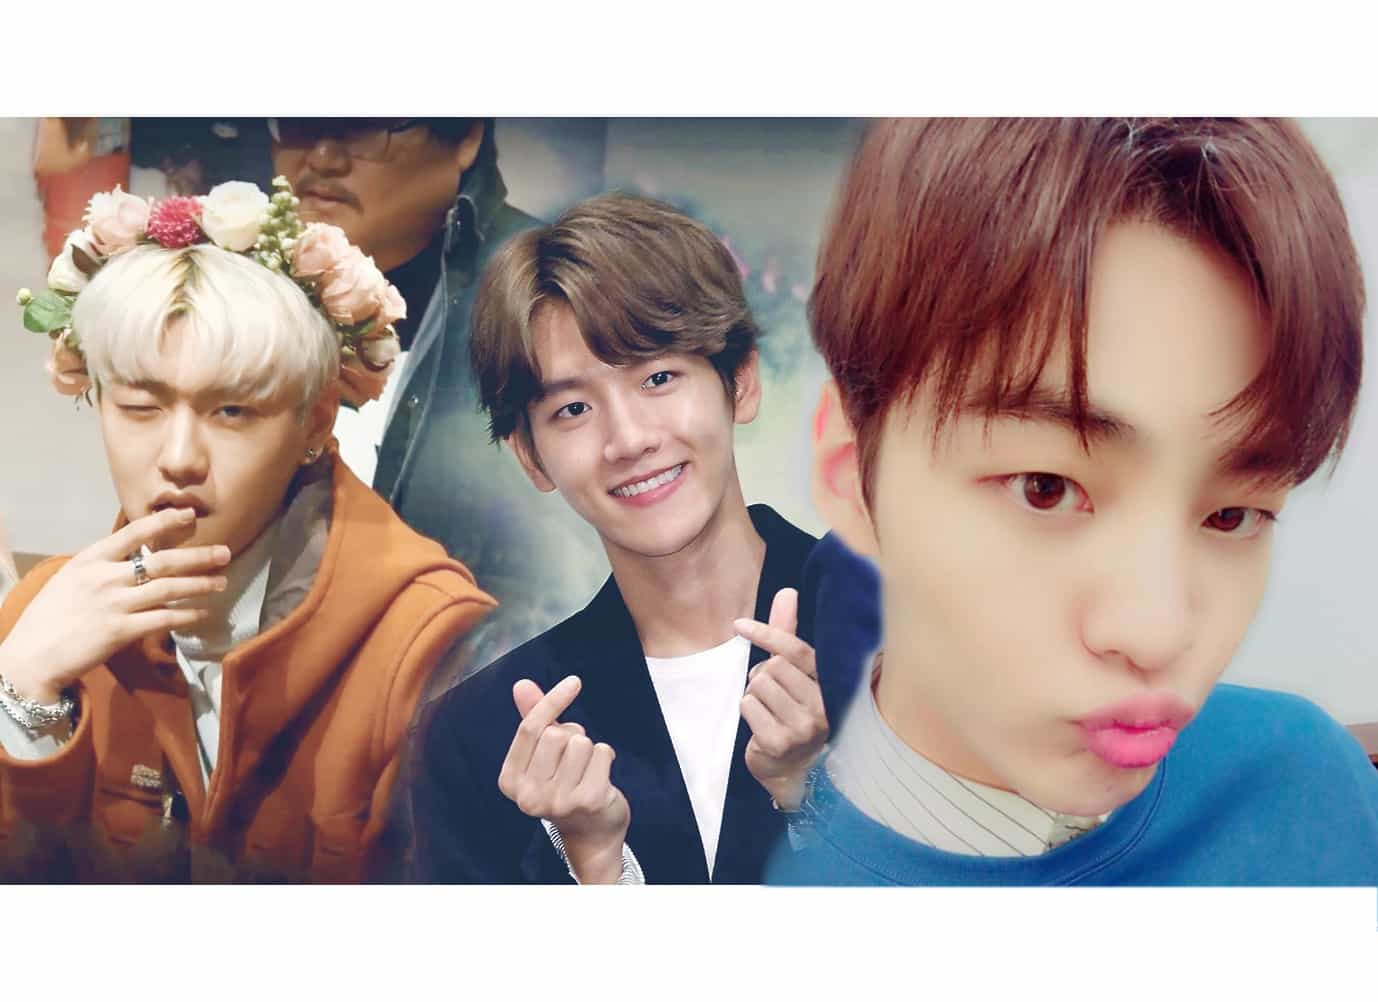 5 Korean Male Celebrities Fulfilling Fans 3 Most Popular Requests Through SNS